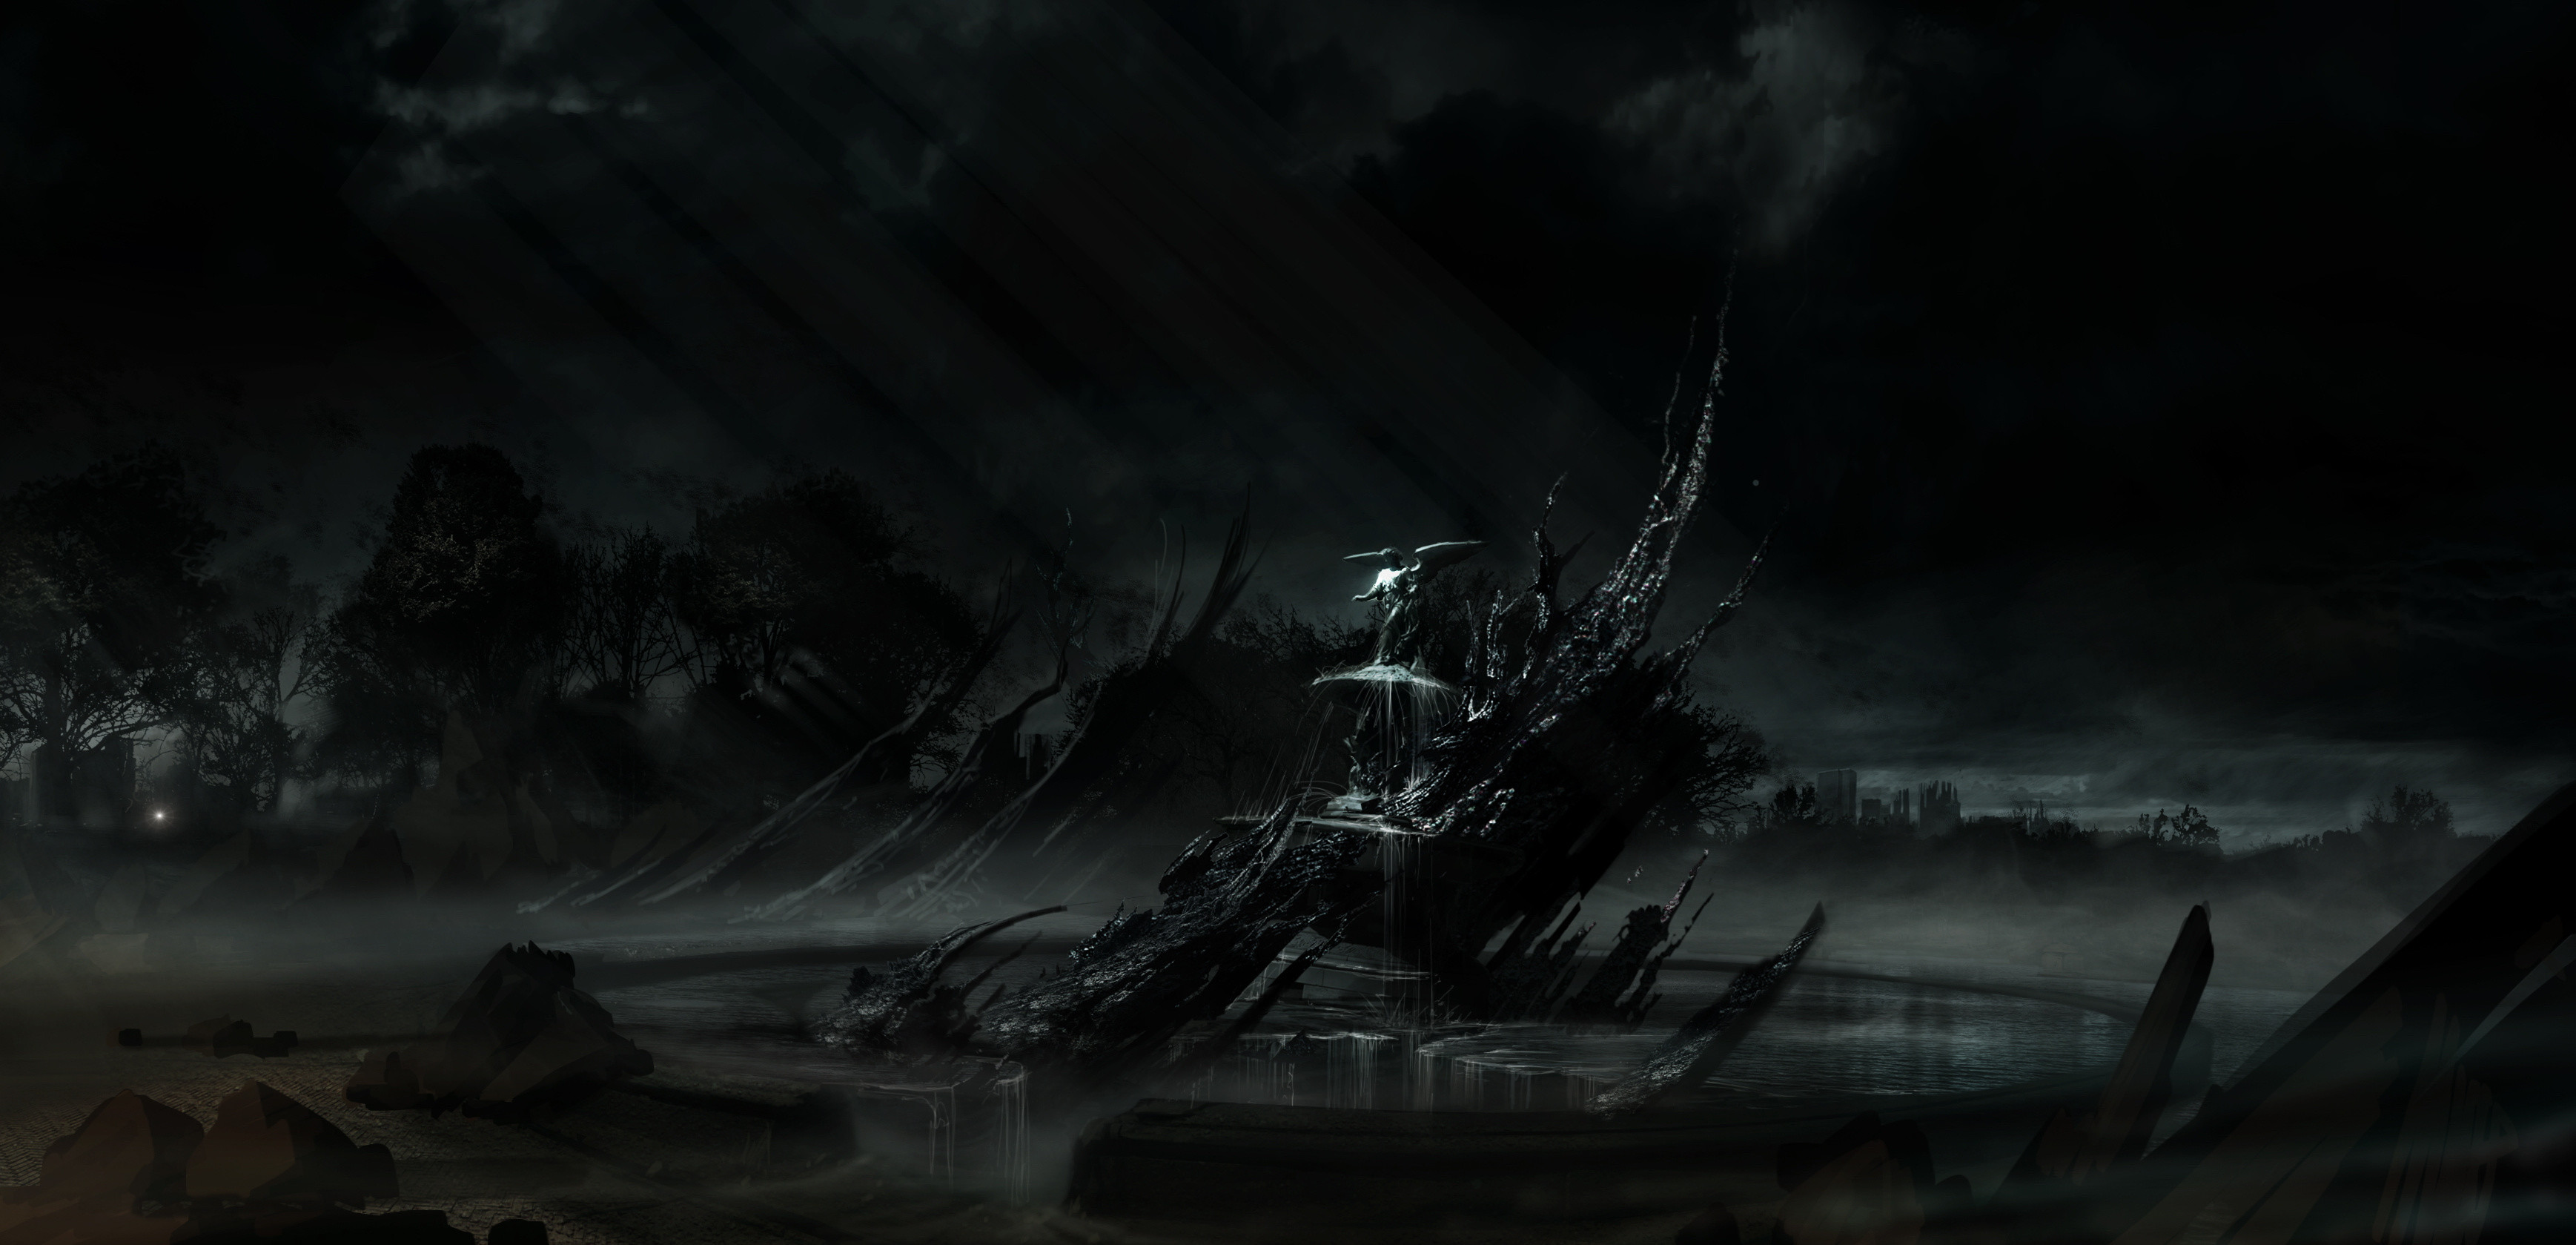 Res: 3475x1679, Alone In The Dark HD Wallpapers